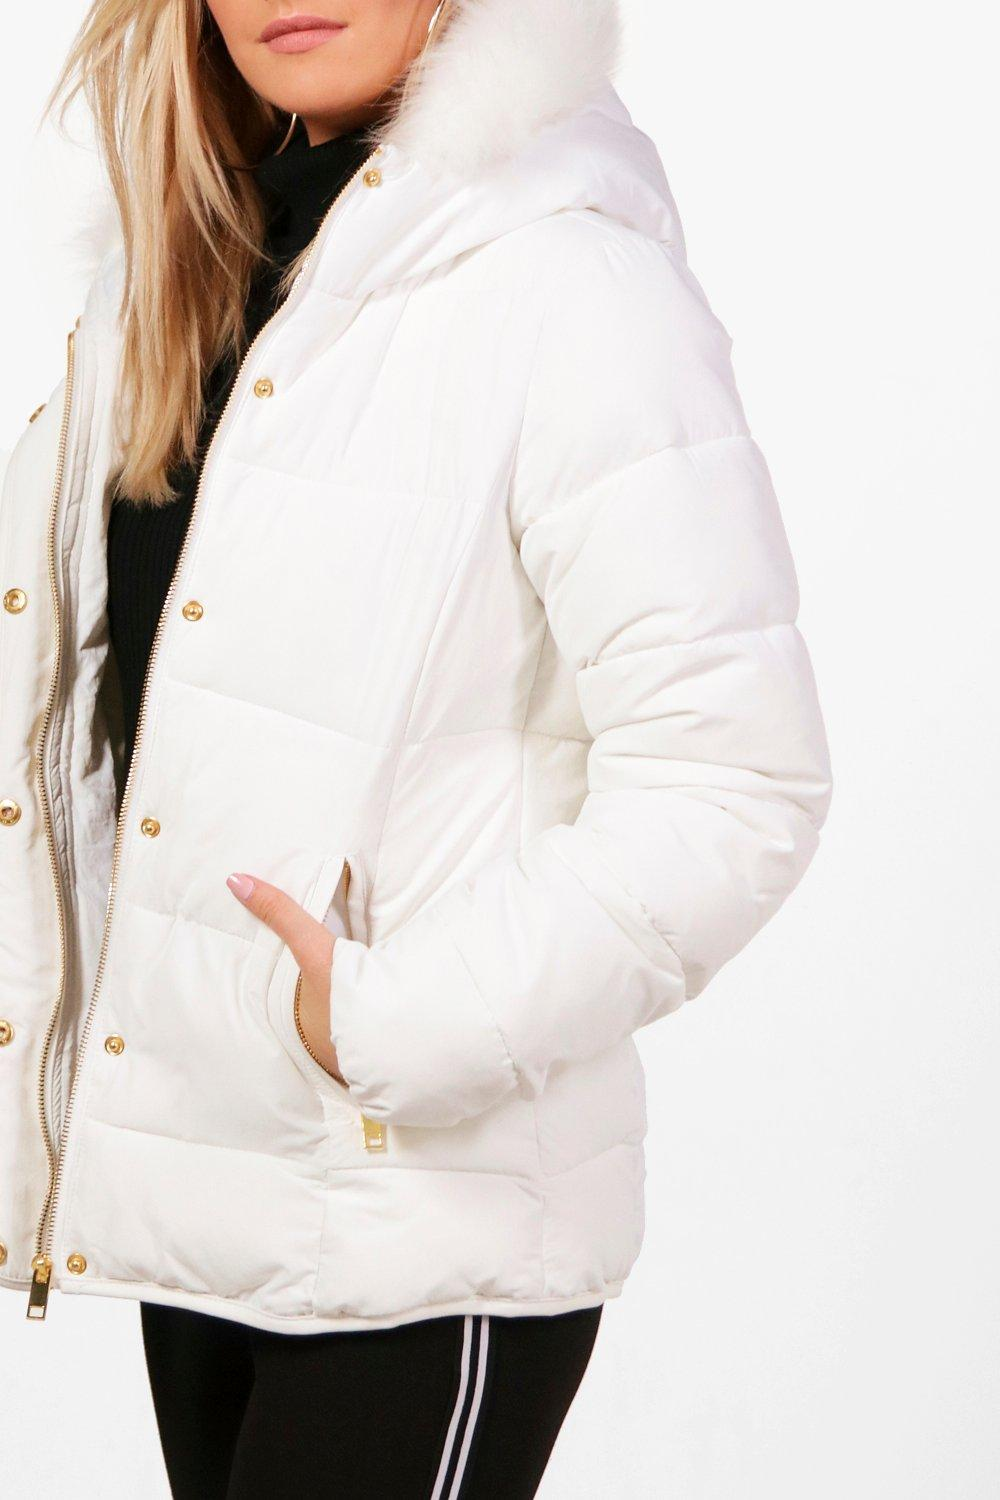 Jacket Faux Hood white Fitted With Padded Fur Cq6g54